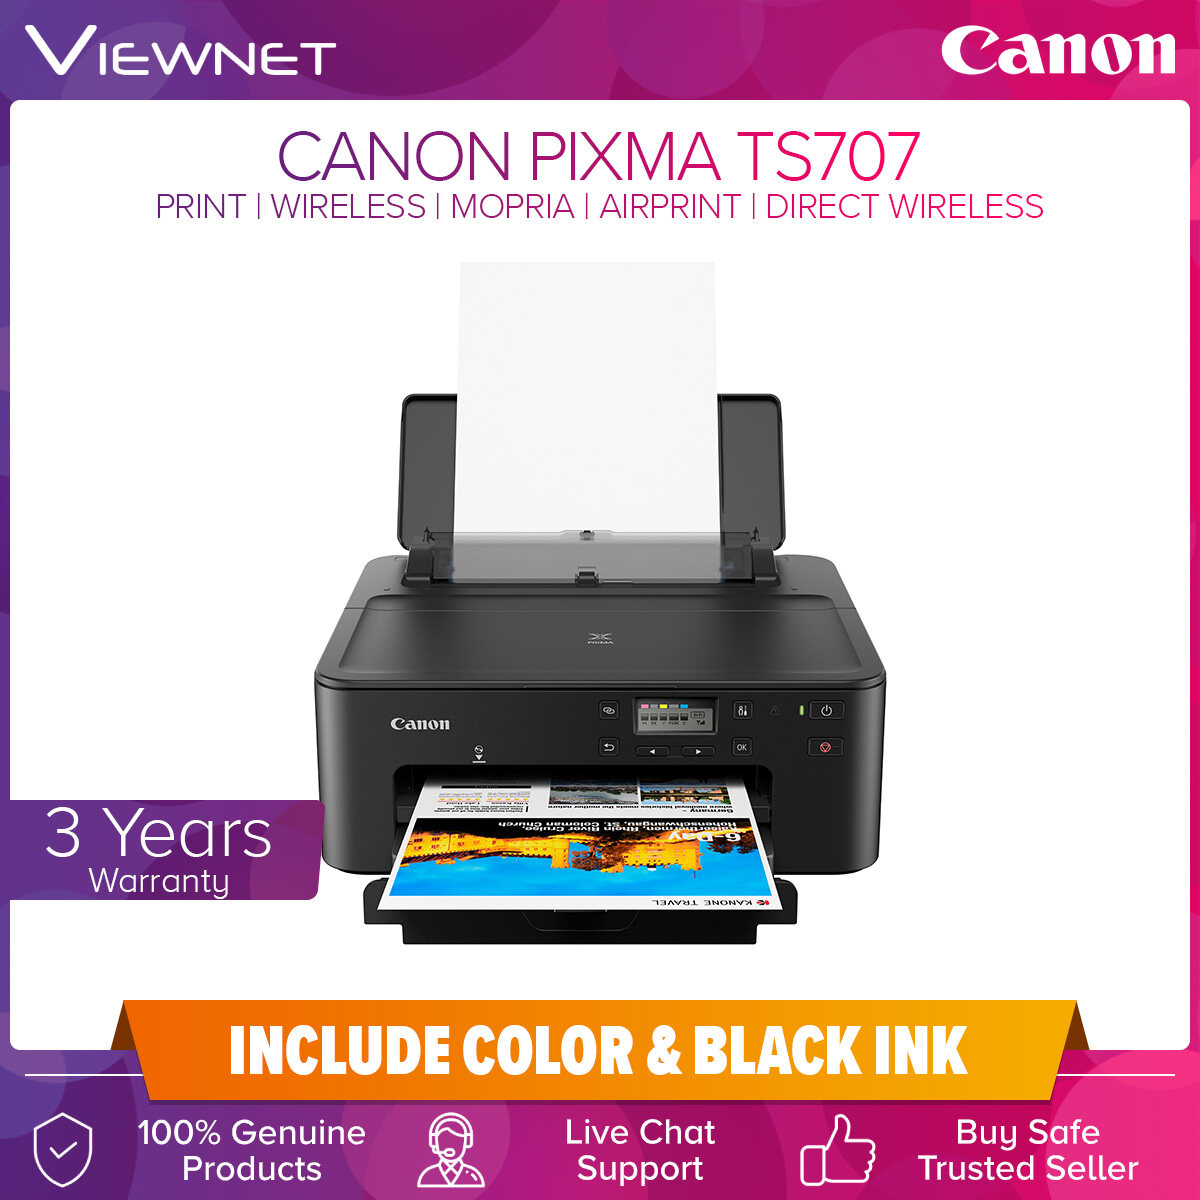 Canon PIXMA TS707 High Performance Wireless Printer for Home and Small Offices, Print, Wireless, Wired LAN, Wireless/Wired LAN Pictbridge, Mopria, AirPrint, BLE, Direct Wireless